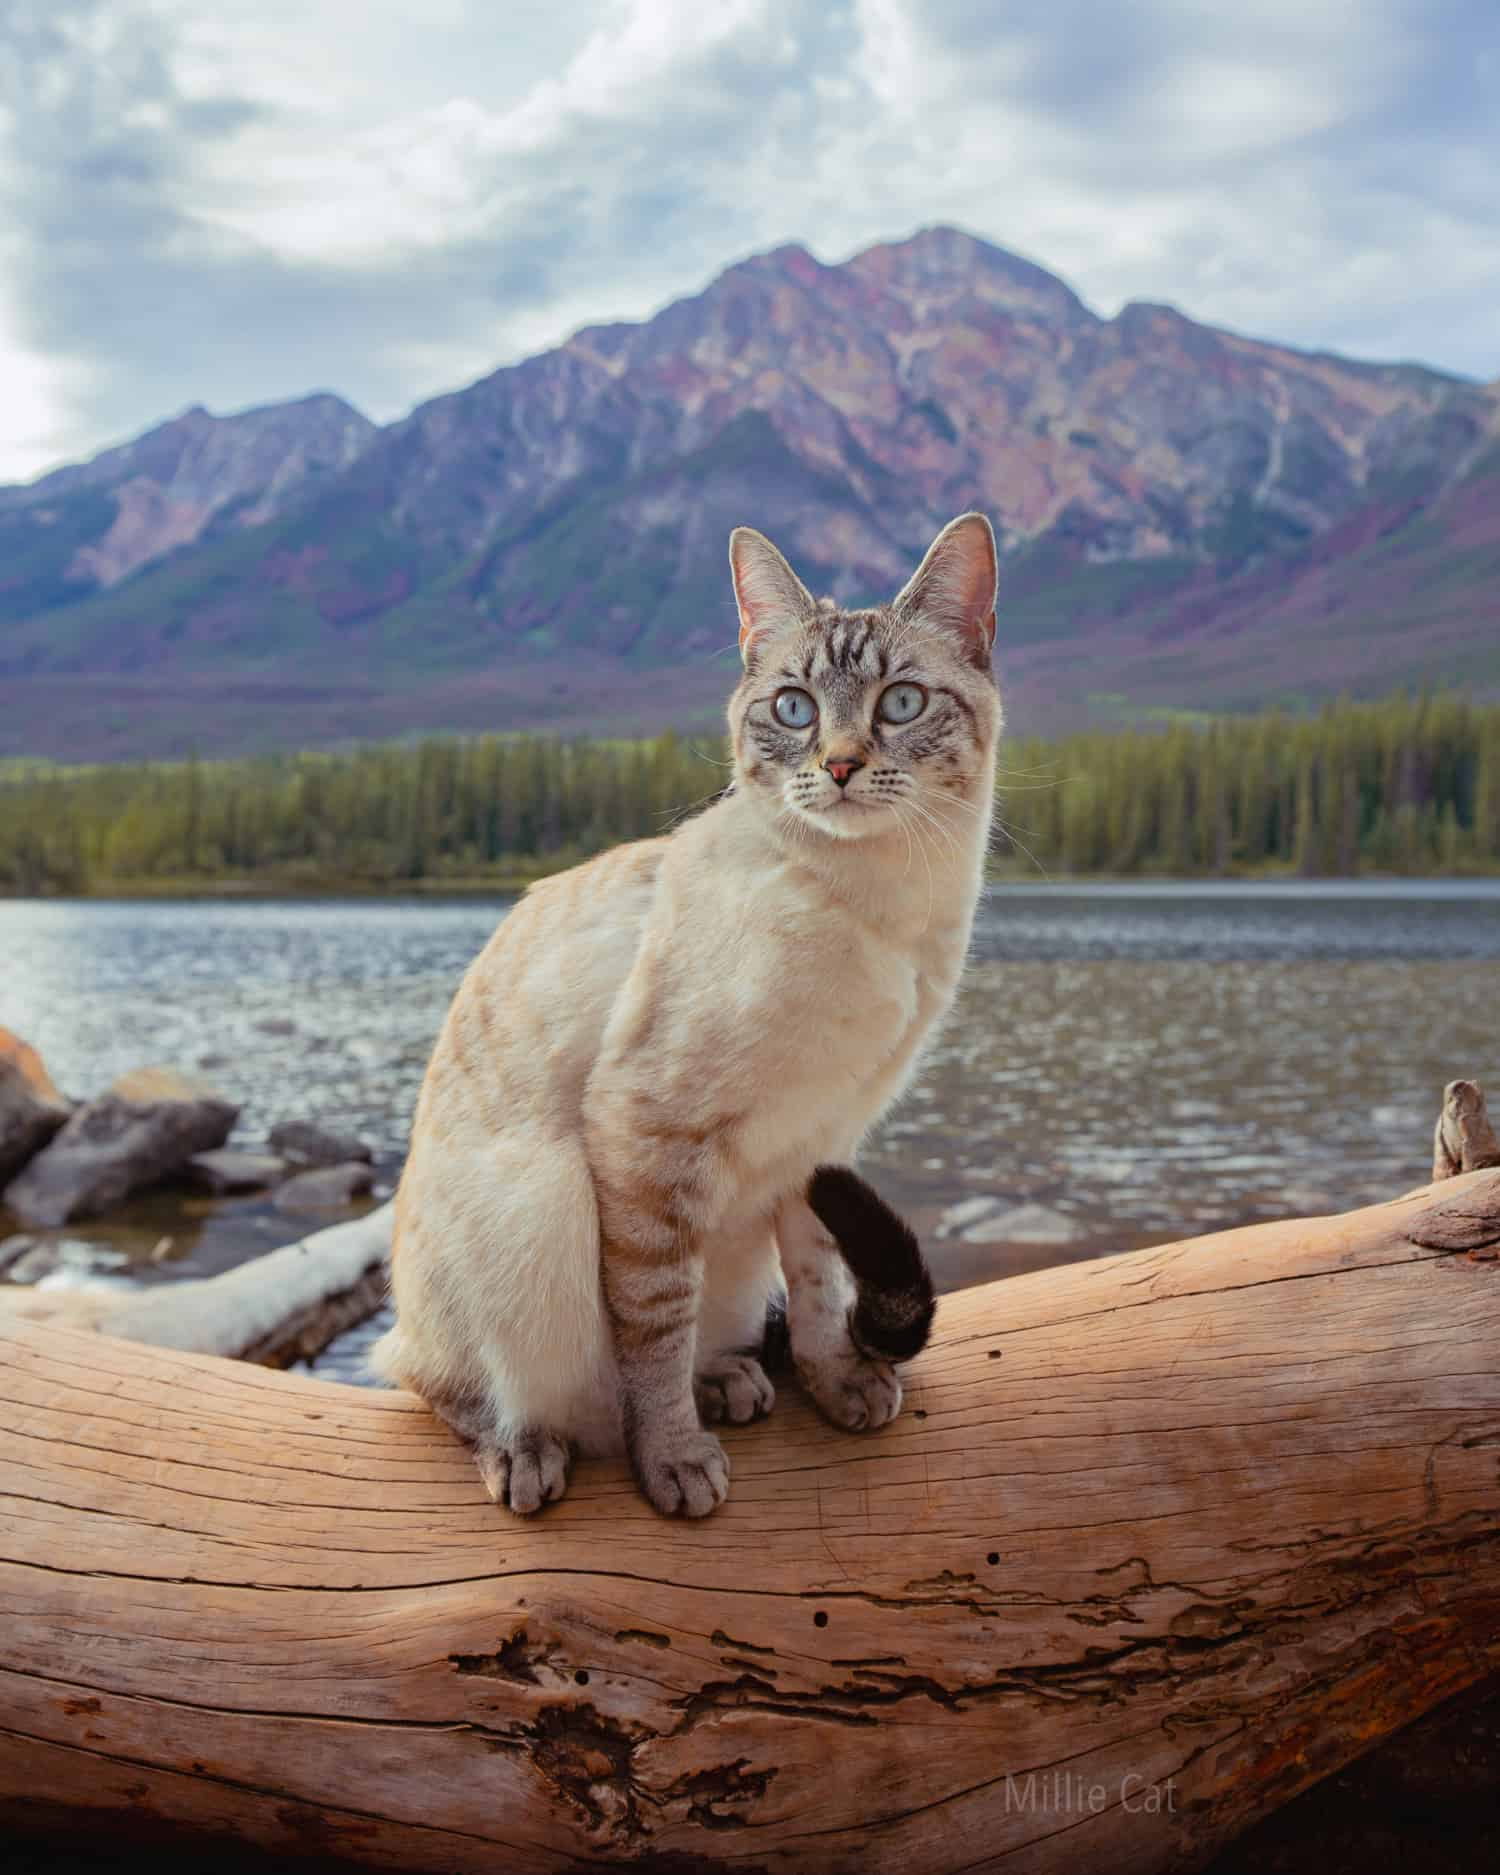 White and grey cat sitting on a log in front of a lake with a mountain in the background